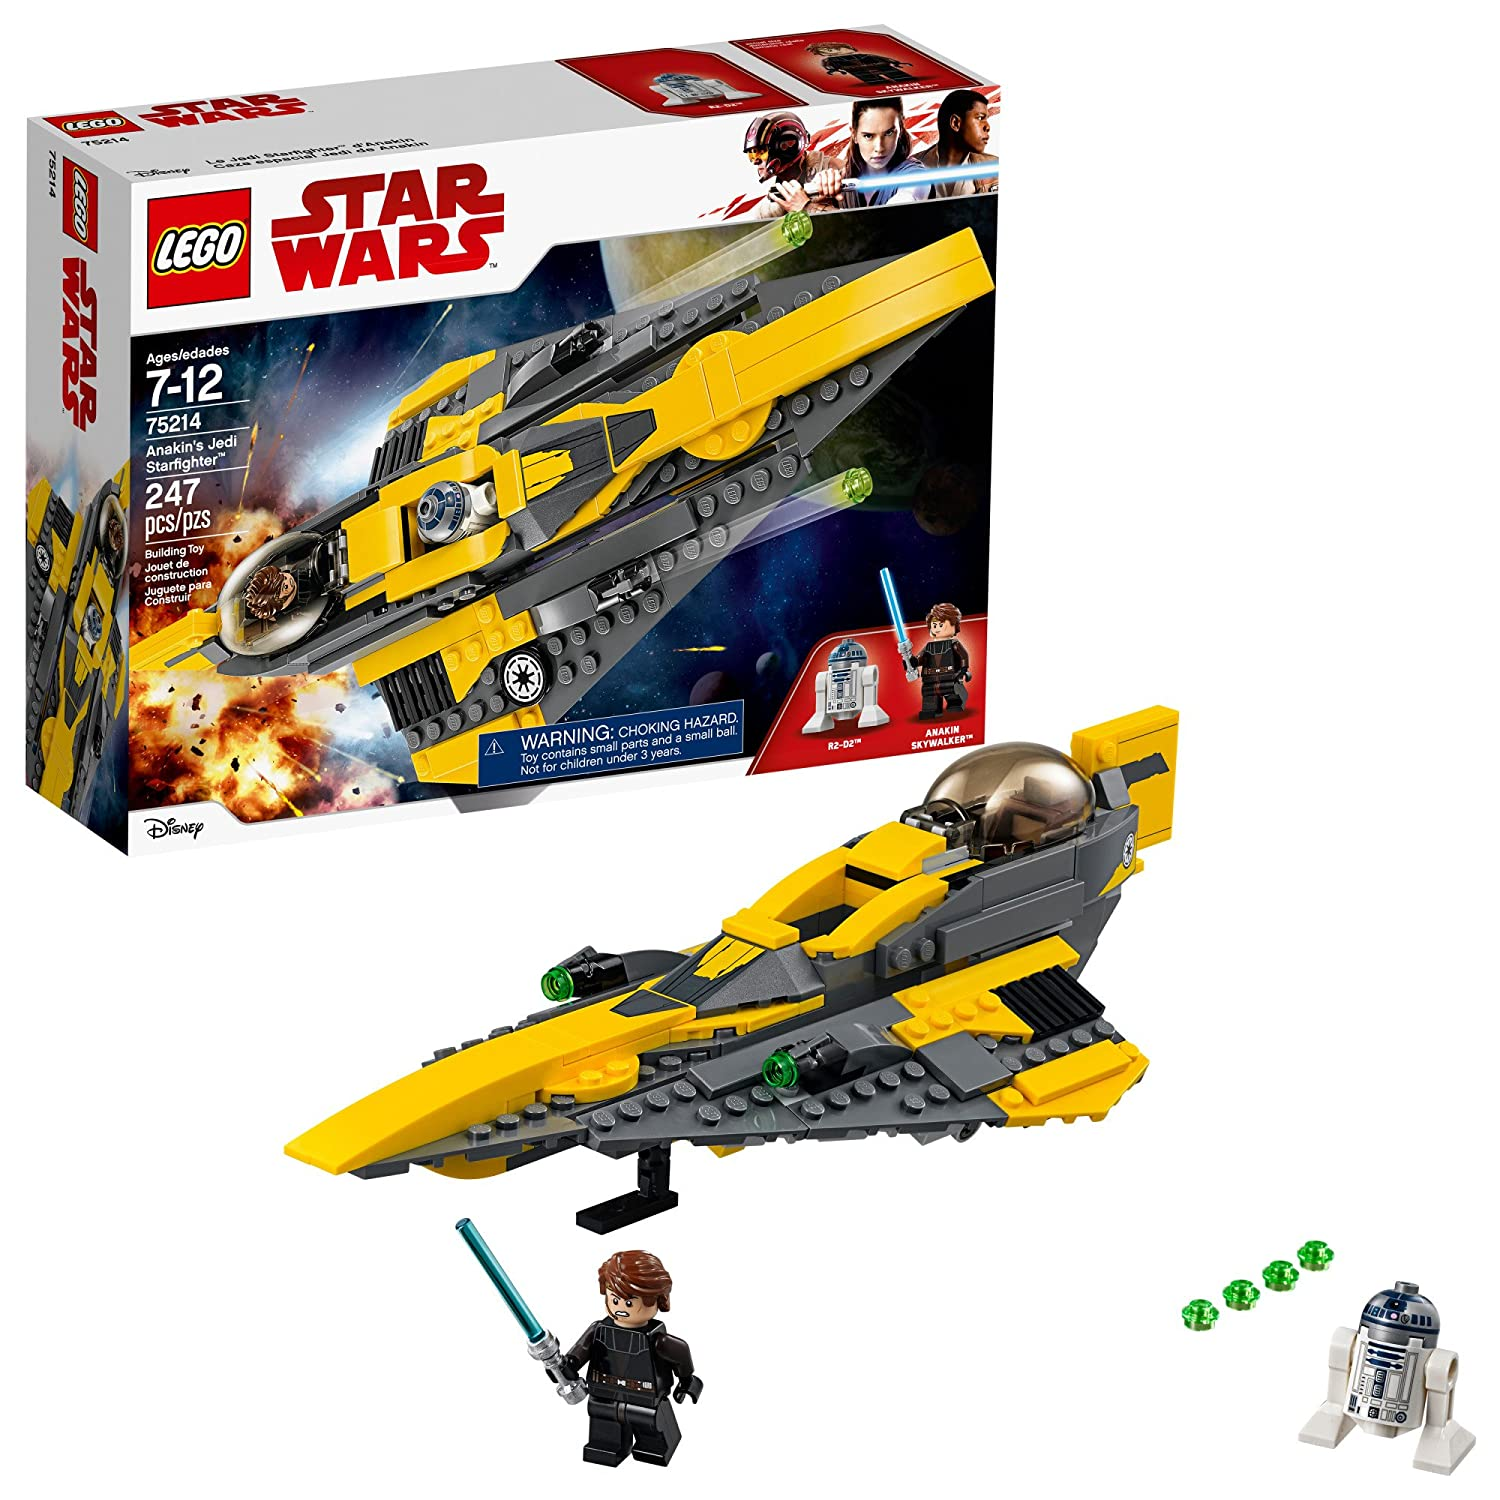 Lego Star Wars Anakin's Jedi Starfighter 75214 Star Wars Toy 6212766